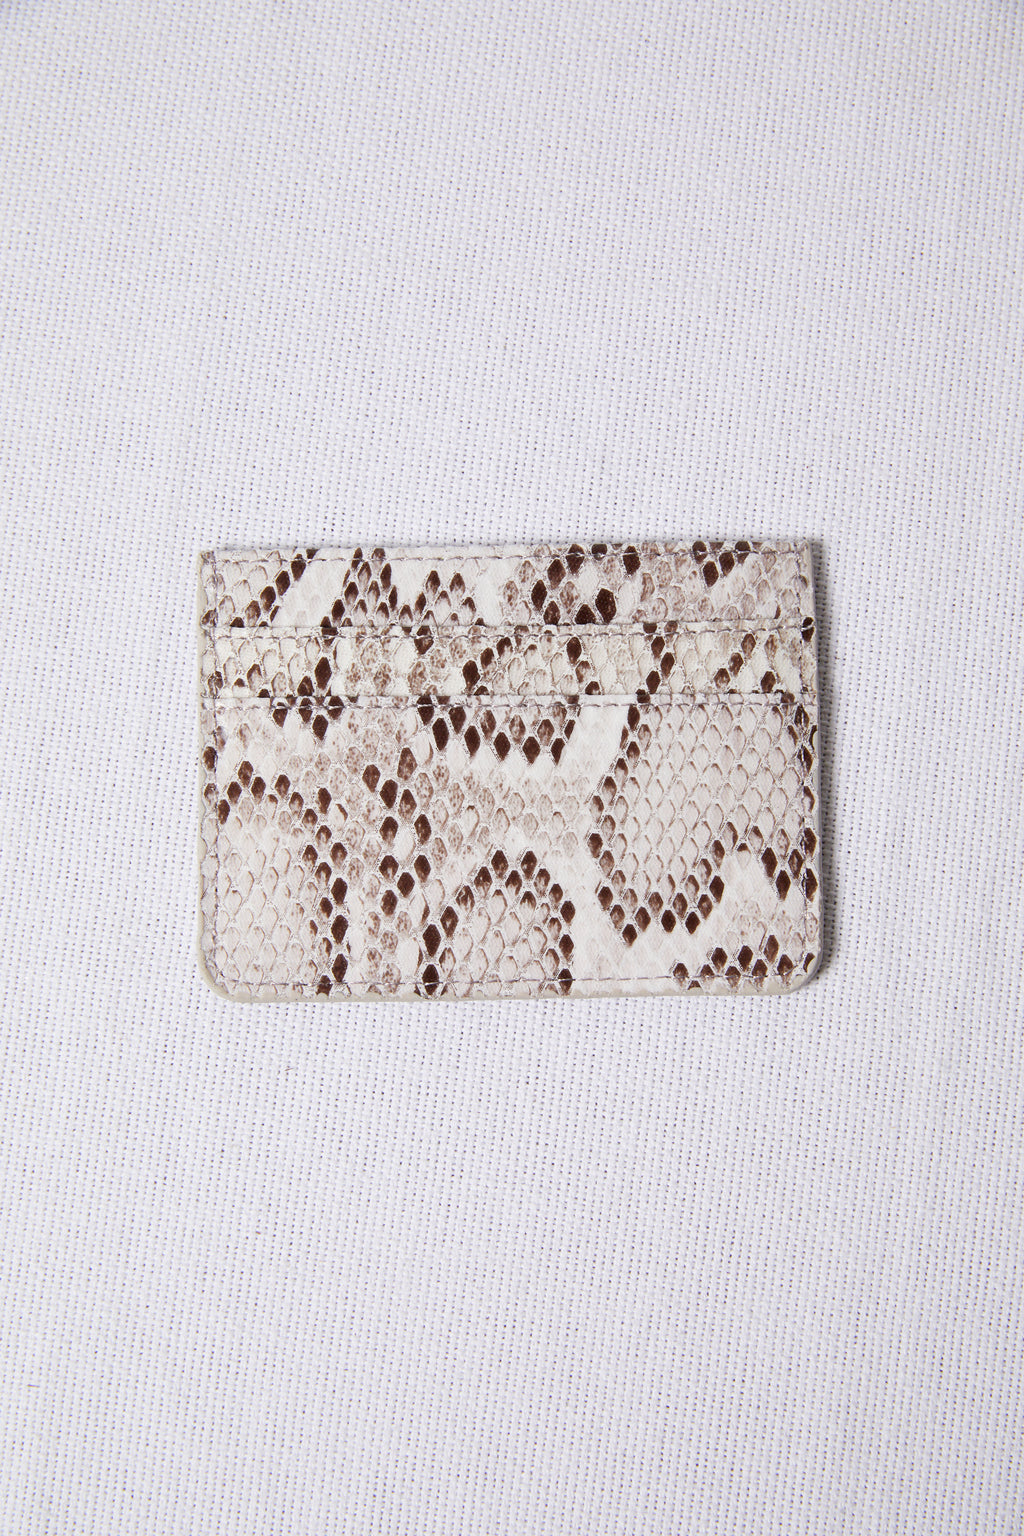 White Snakeskin Multi Slots Card Case - picnic-sf